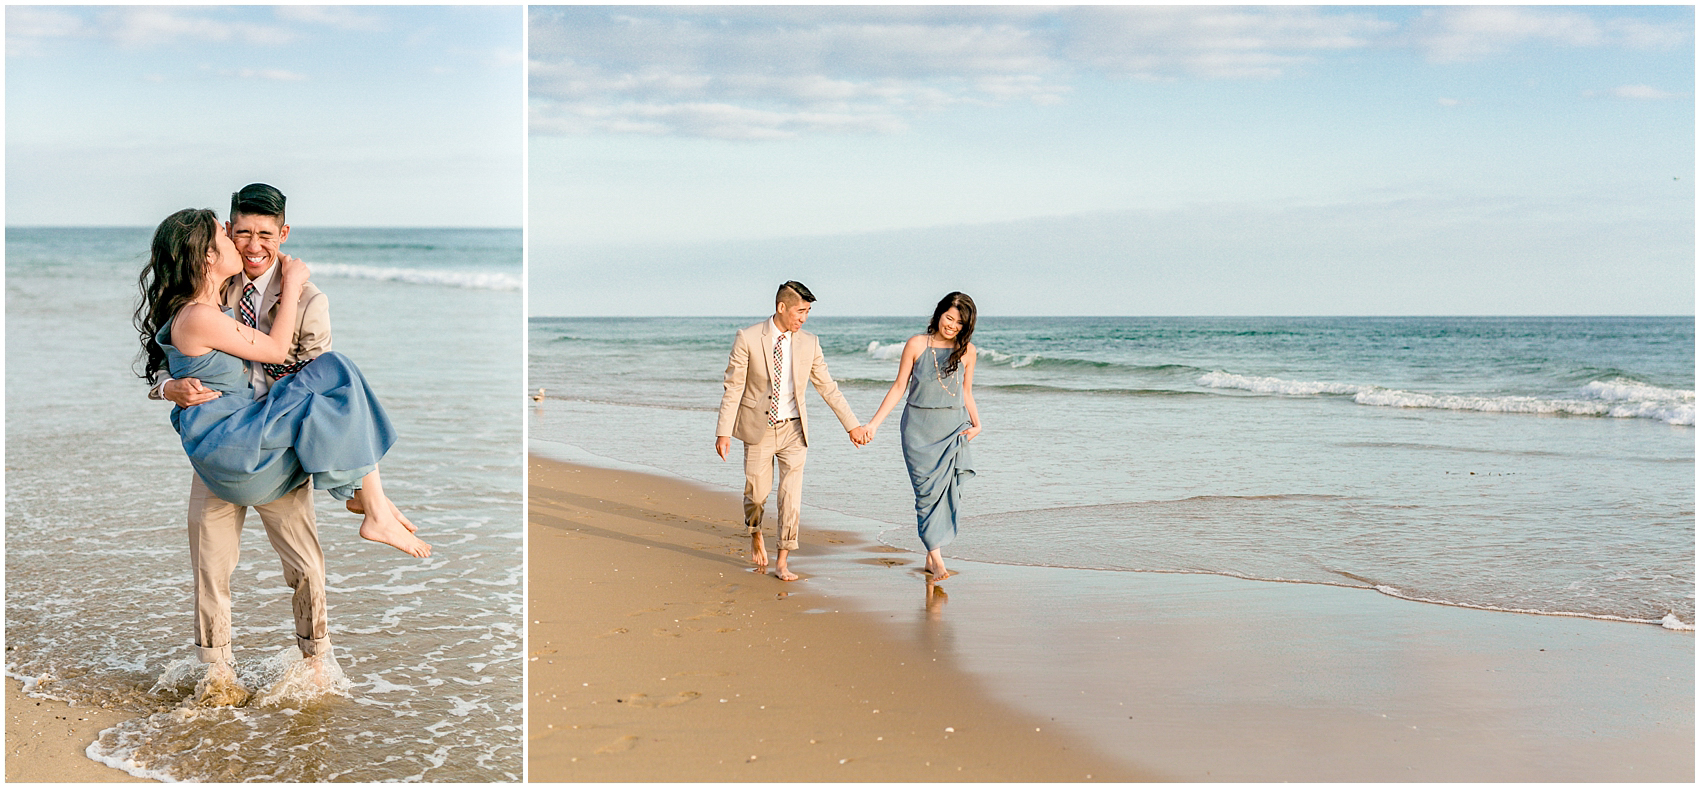 Newport Beach Engagement Photography Smetona Photo Bonnie Tim-0010.jpg